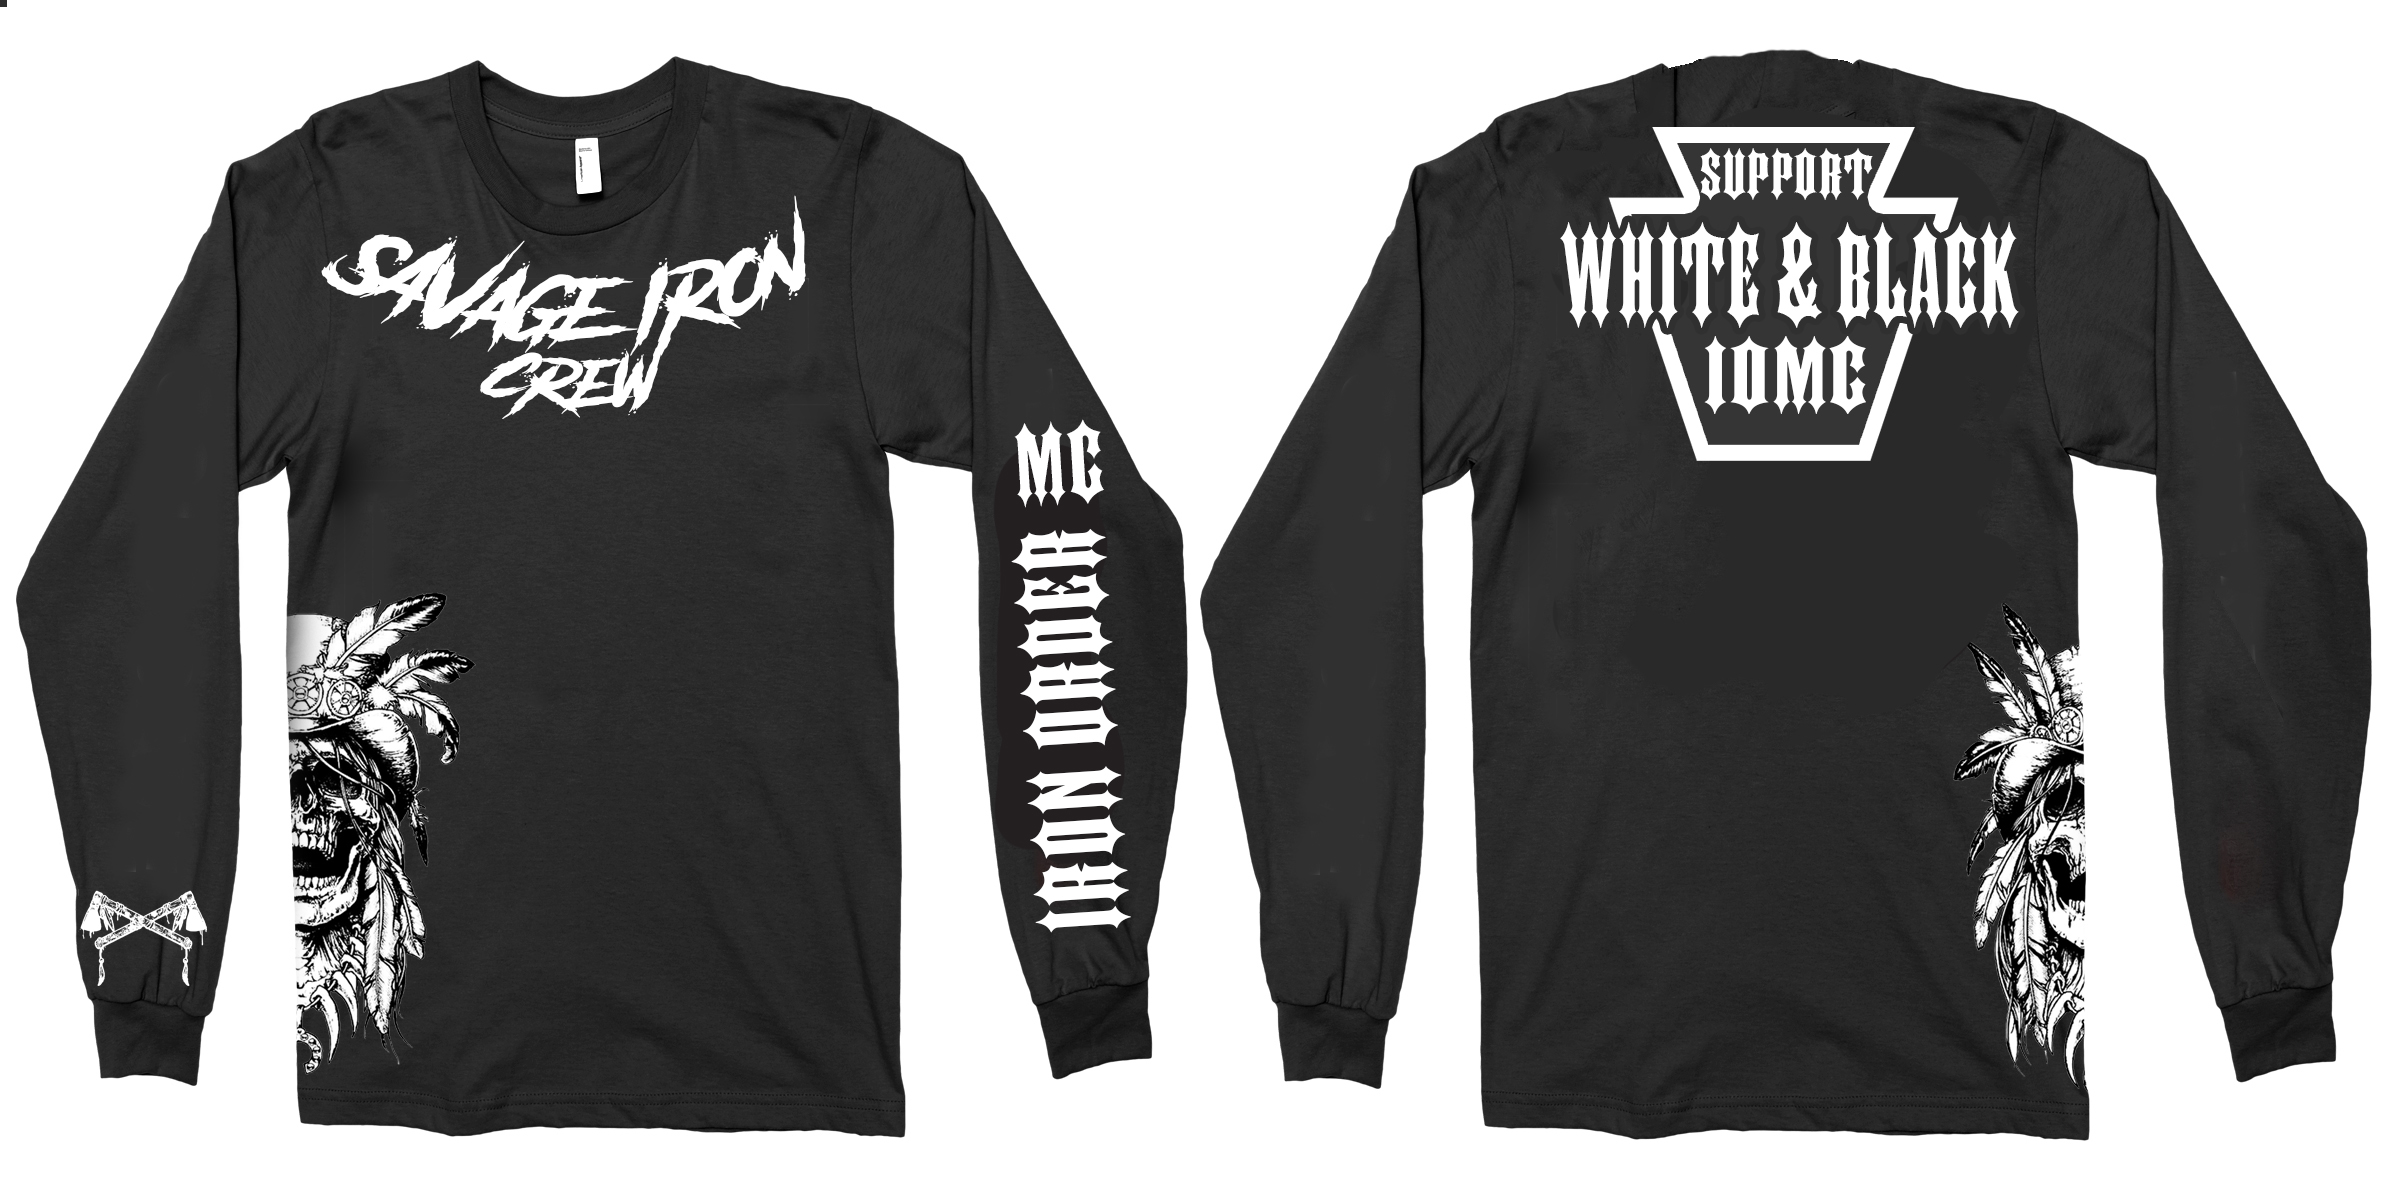 Support Iron Order MC - Long Sleeve T-shirt